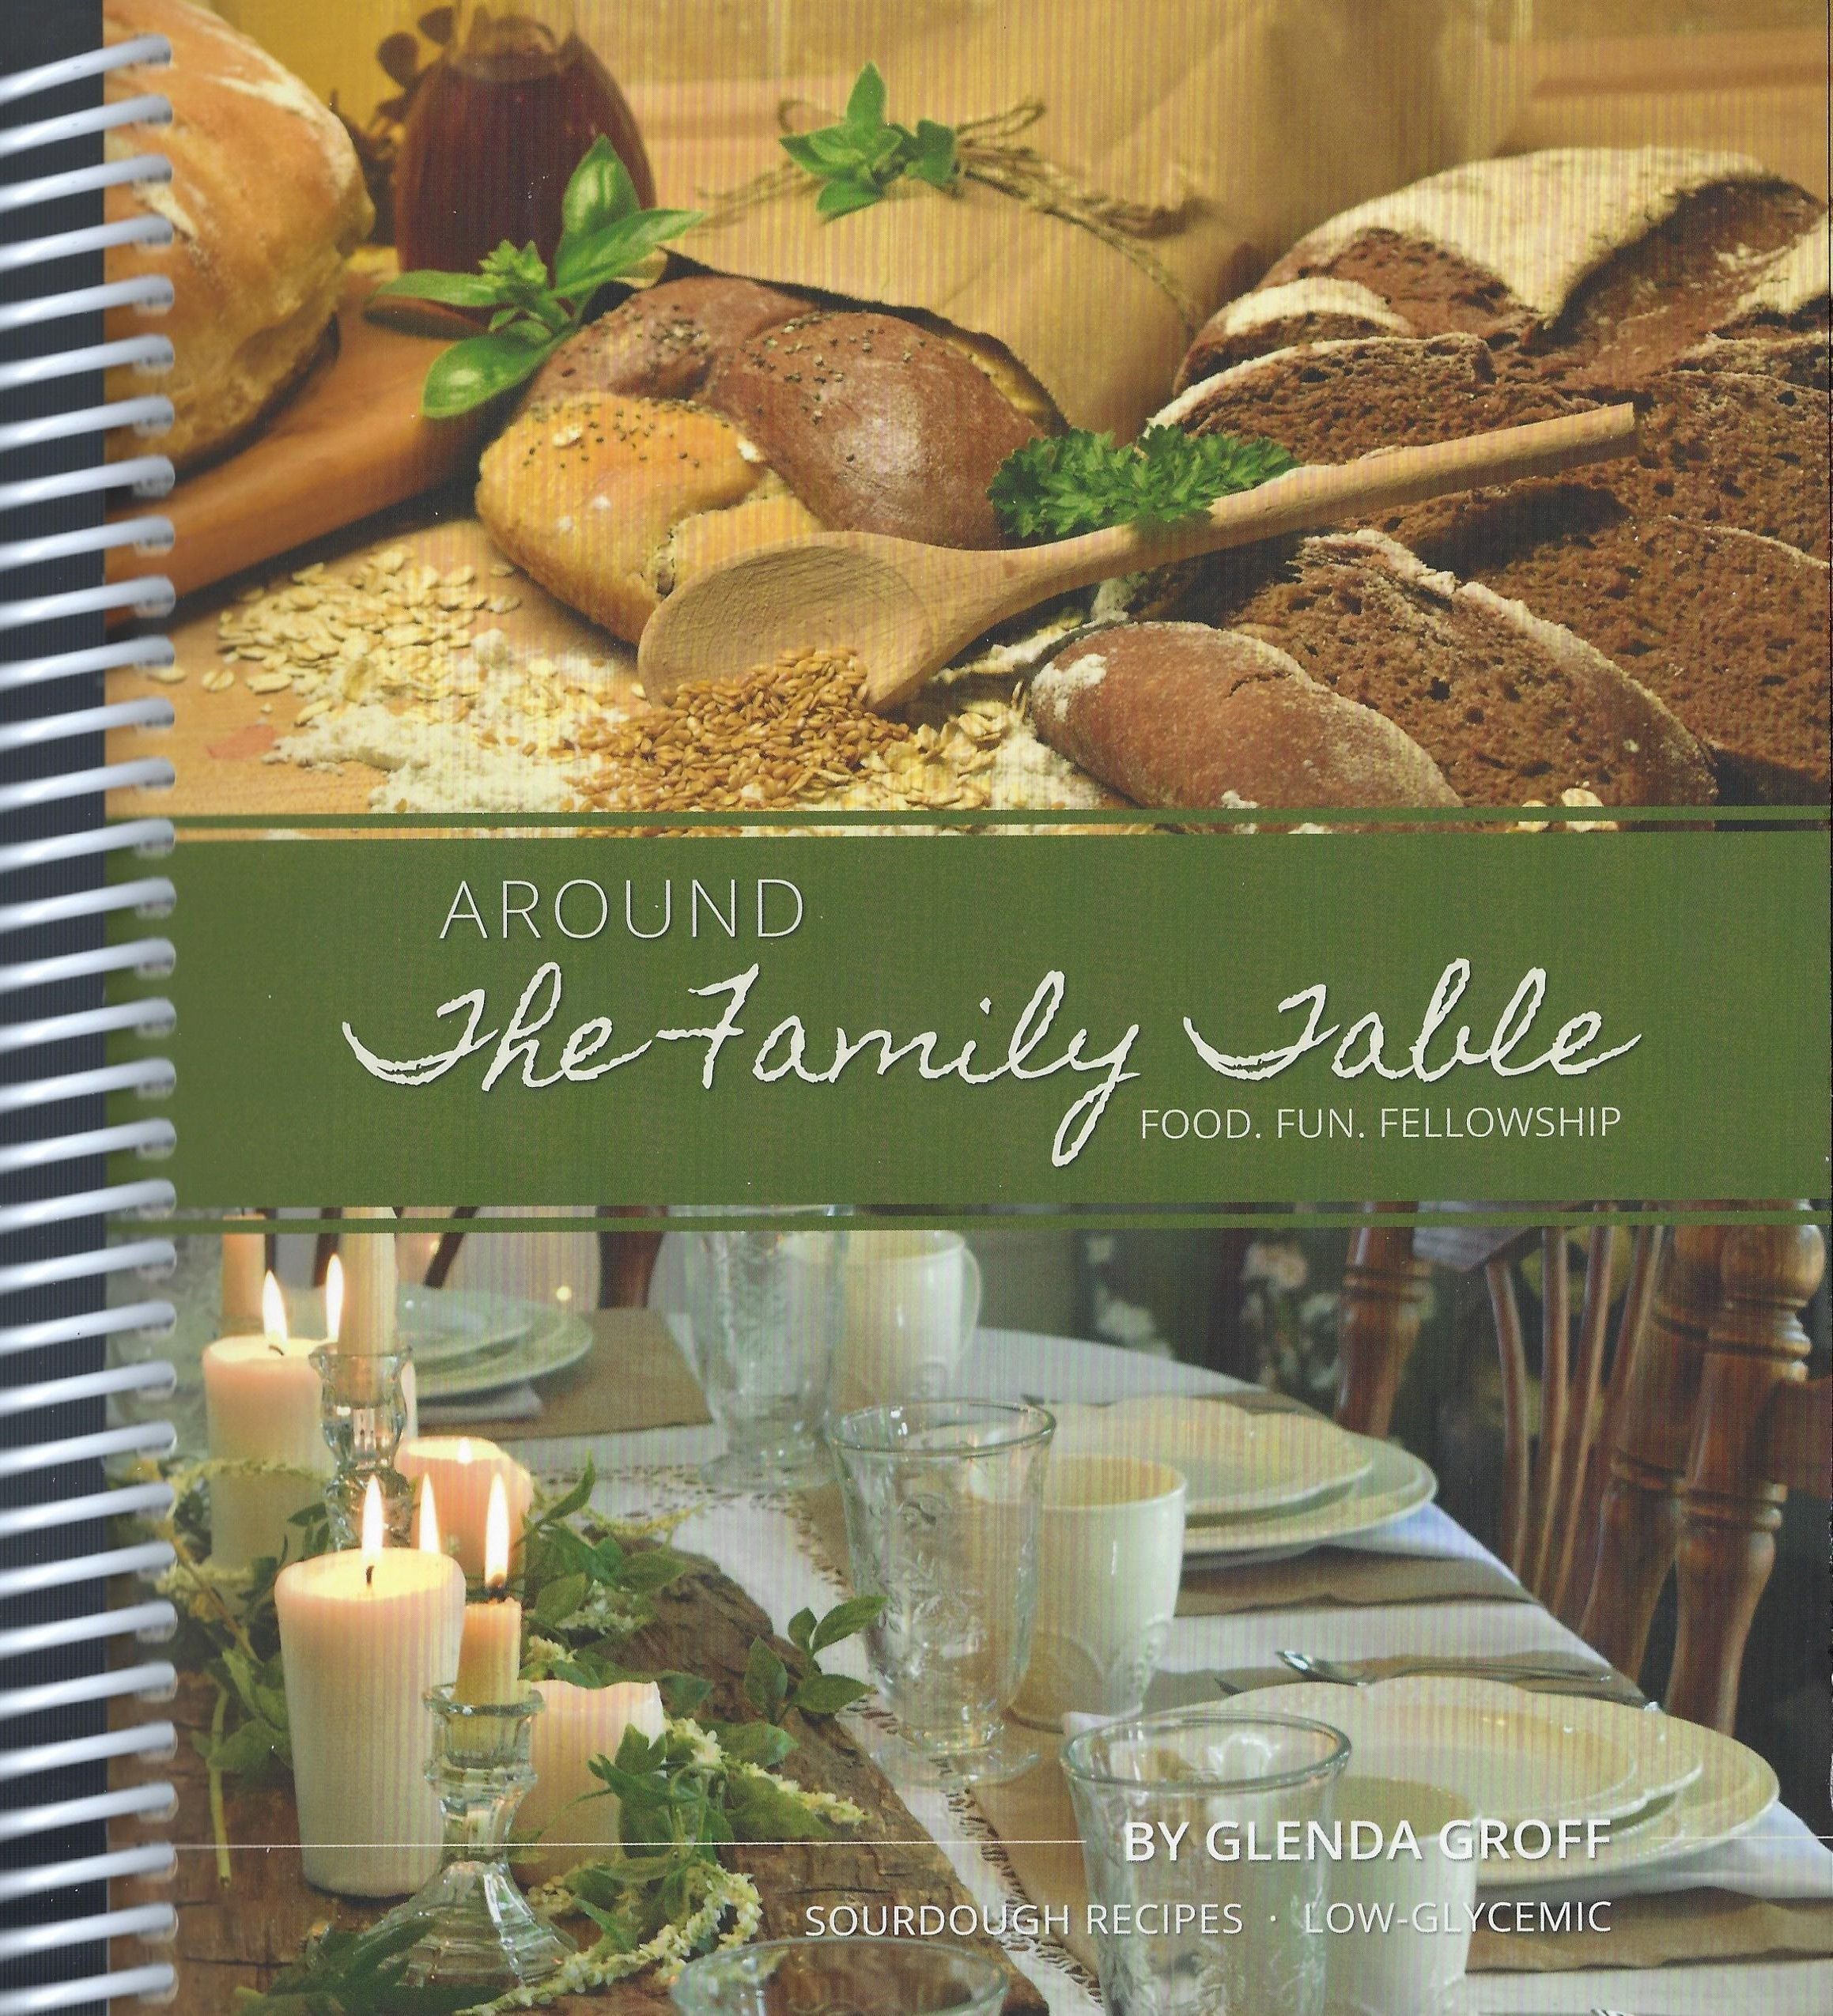 AROUND THE FAMILY TABLE Glenda Groff